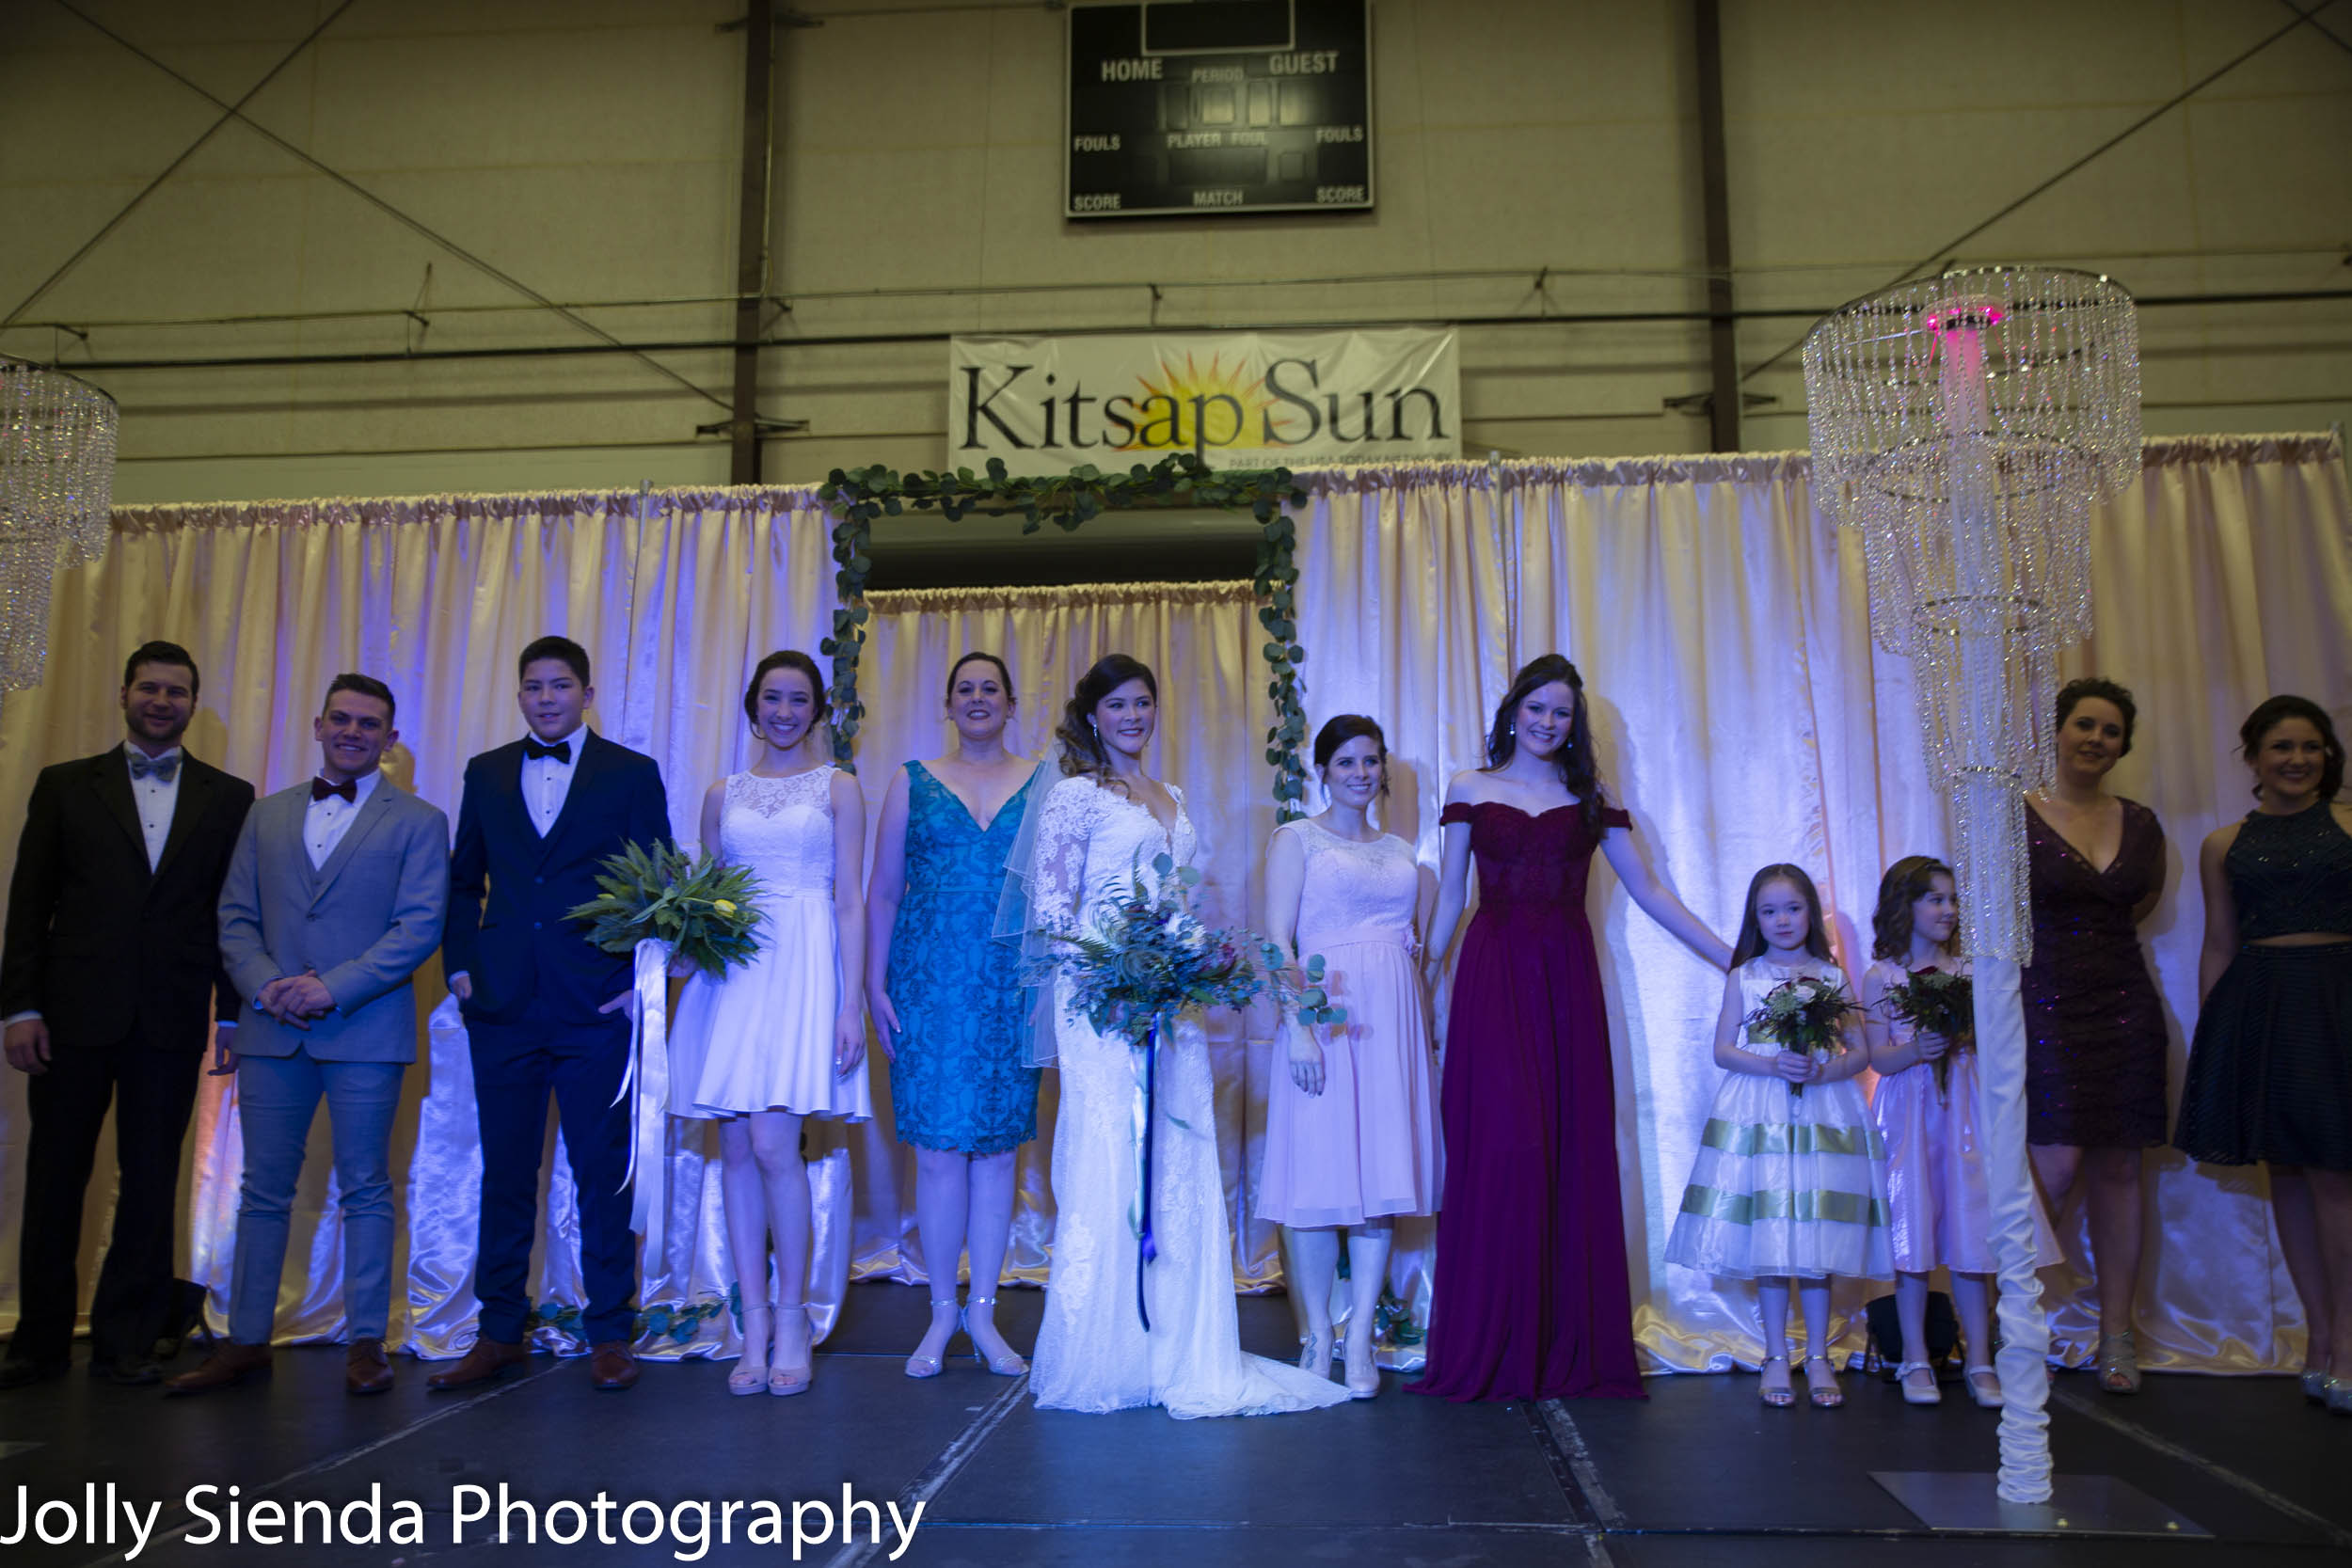 Kitsap Wedding Expo 2019, Wedding Fashion Show